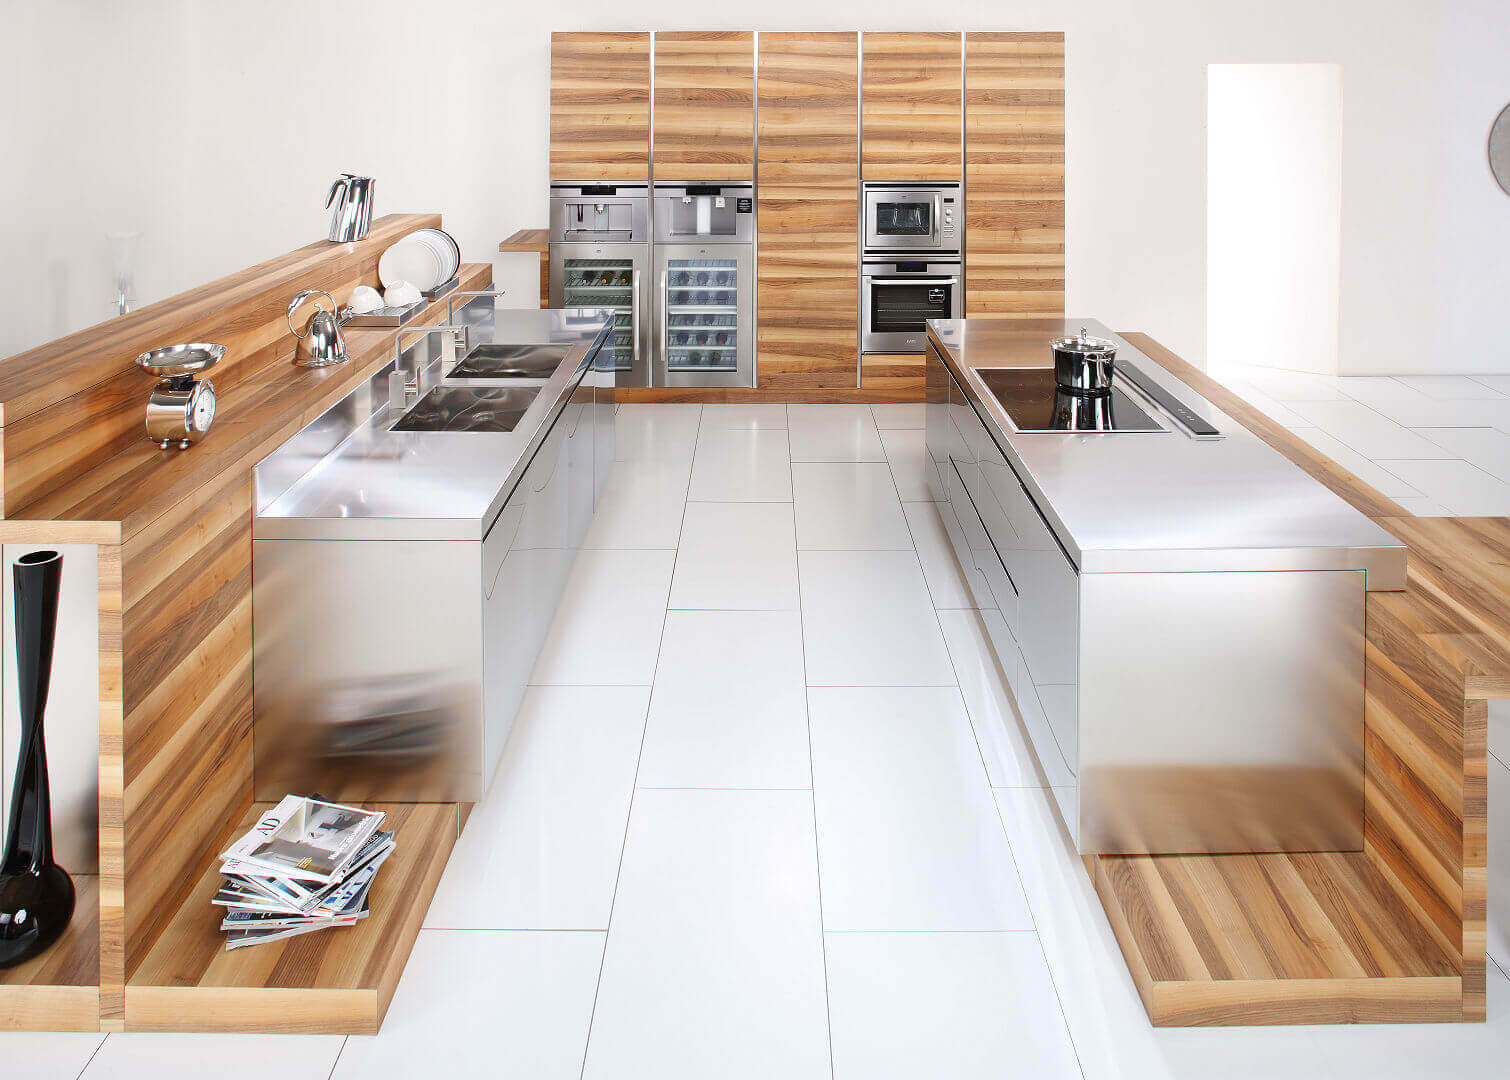 Arca Cucine Italy - Domestic stainless steel kitchens - 16 - Open - 0001